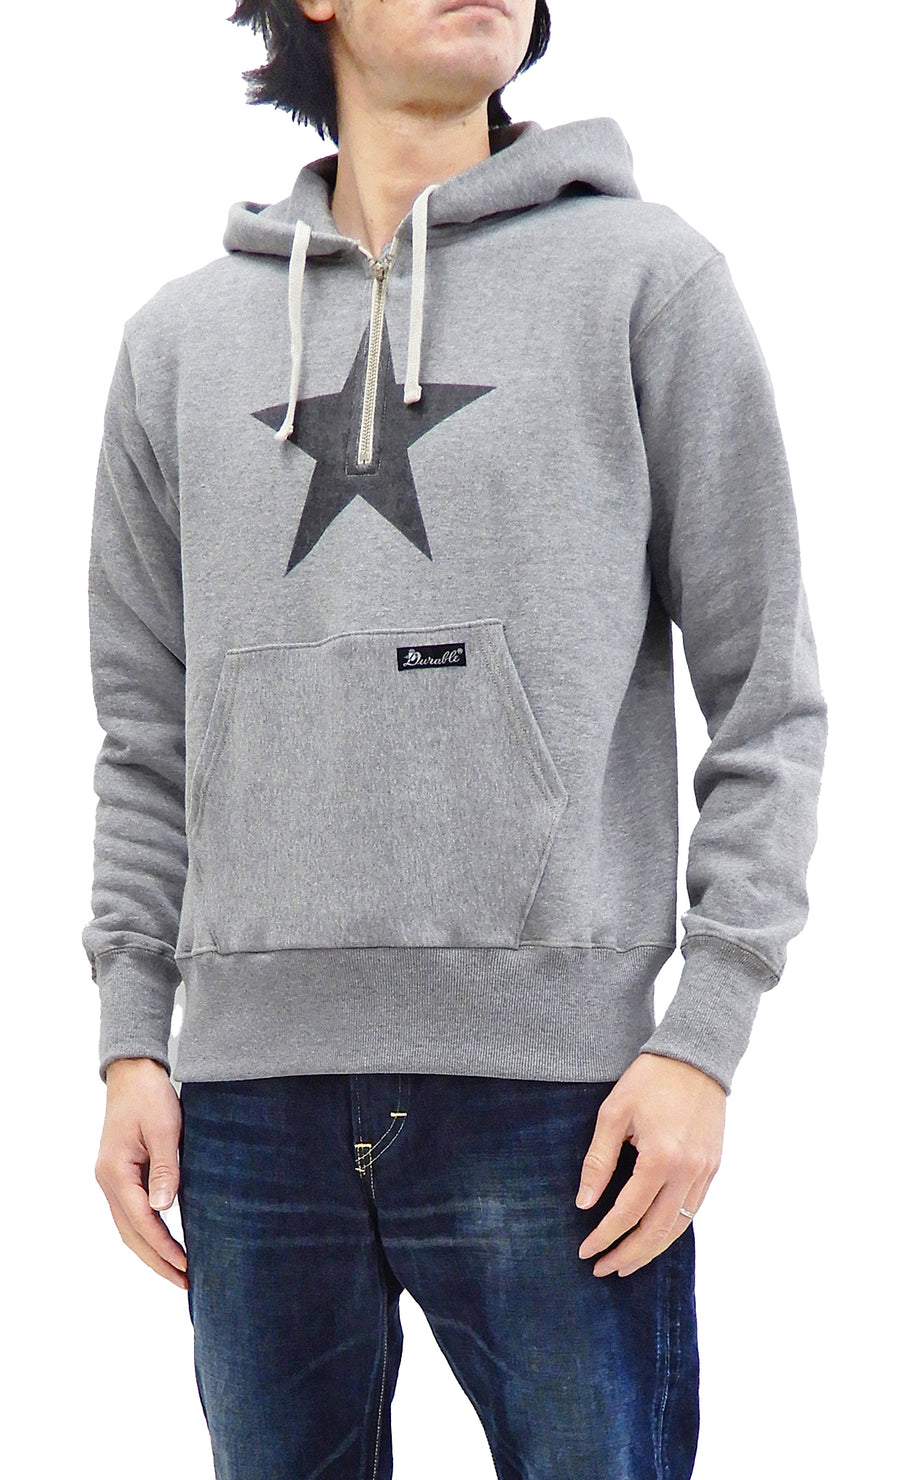 TOYS McCOY Half-zip Hoodie Men's Durable One Star Hooded Sweatshirt TMC2054 Ash-Gray